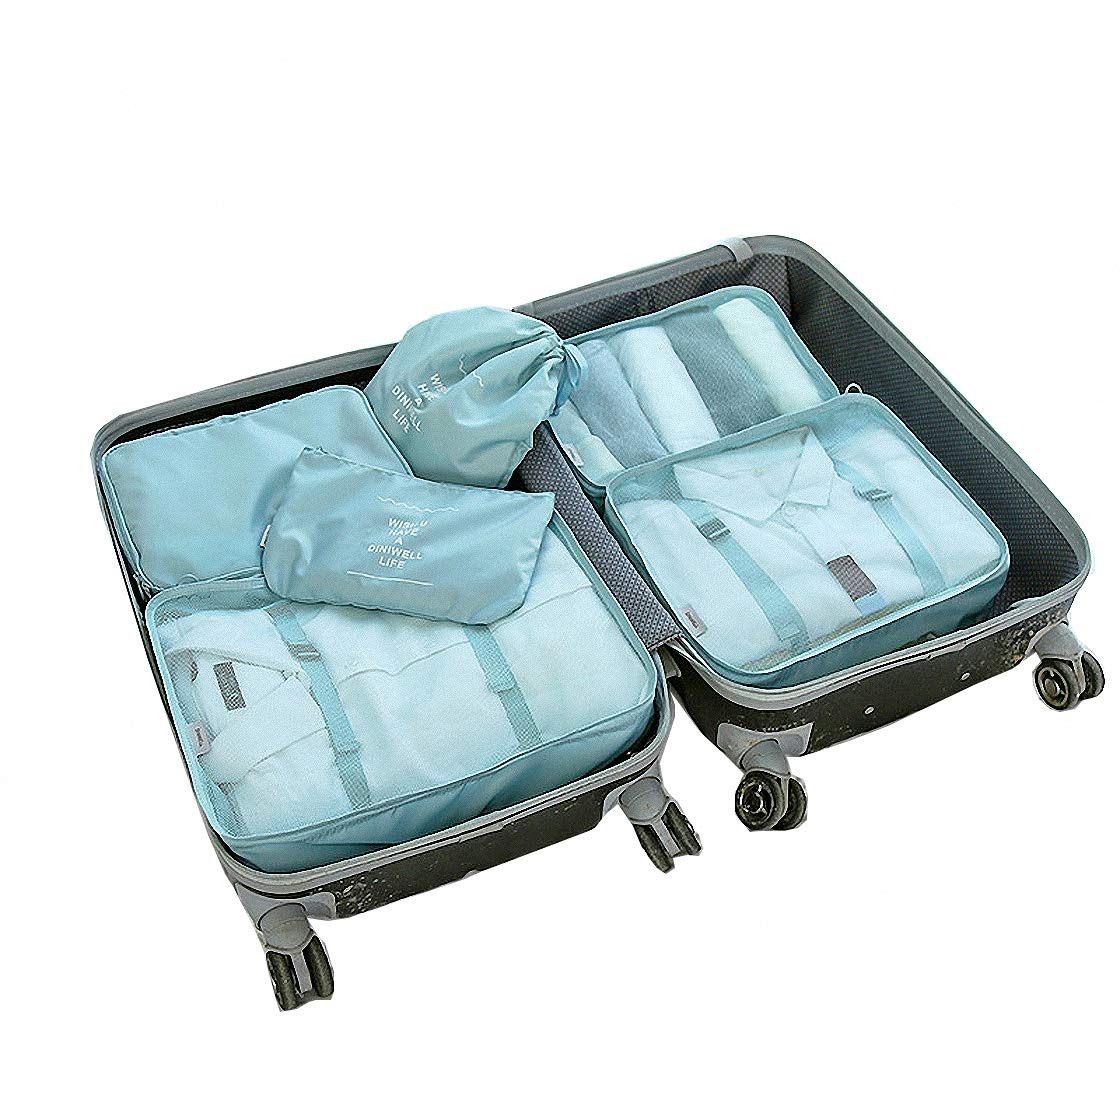 Packing Organizers - Clothing Cubes Shoe Bags Laundry Pouches For Travel Suitcase Luggage, Storage Organizer 6 Set Color Cyan by Diniwell (Image #1)